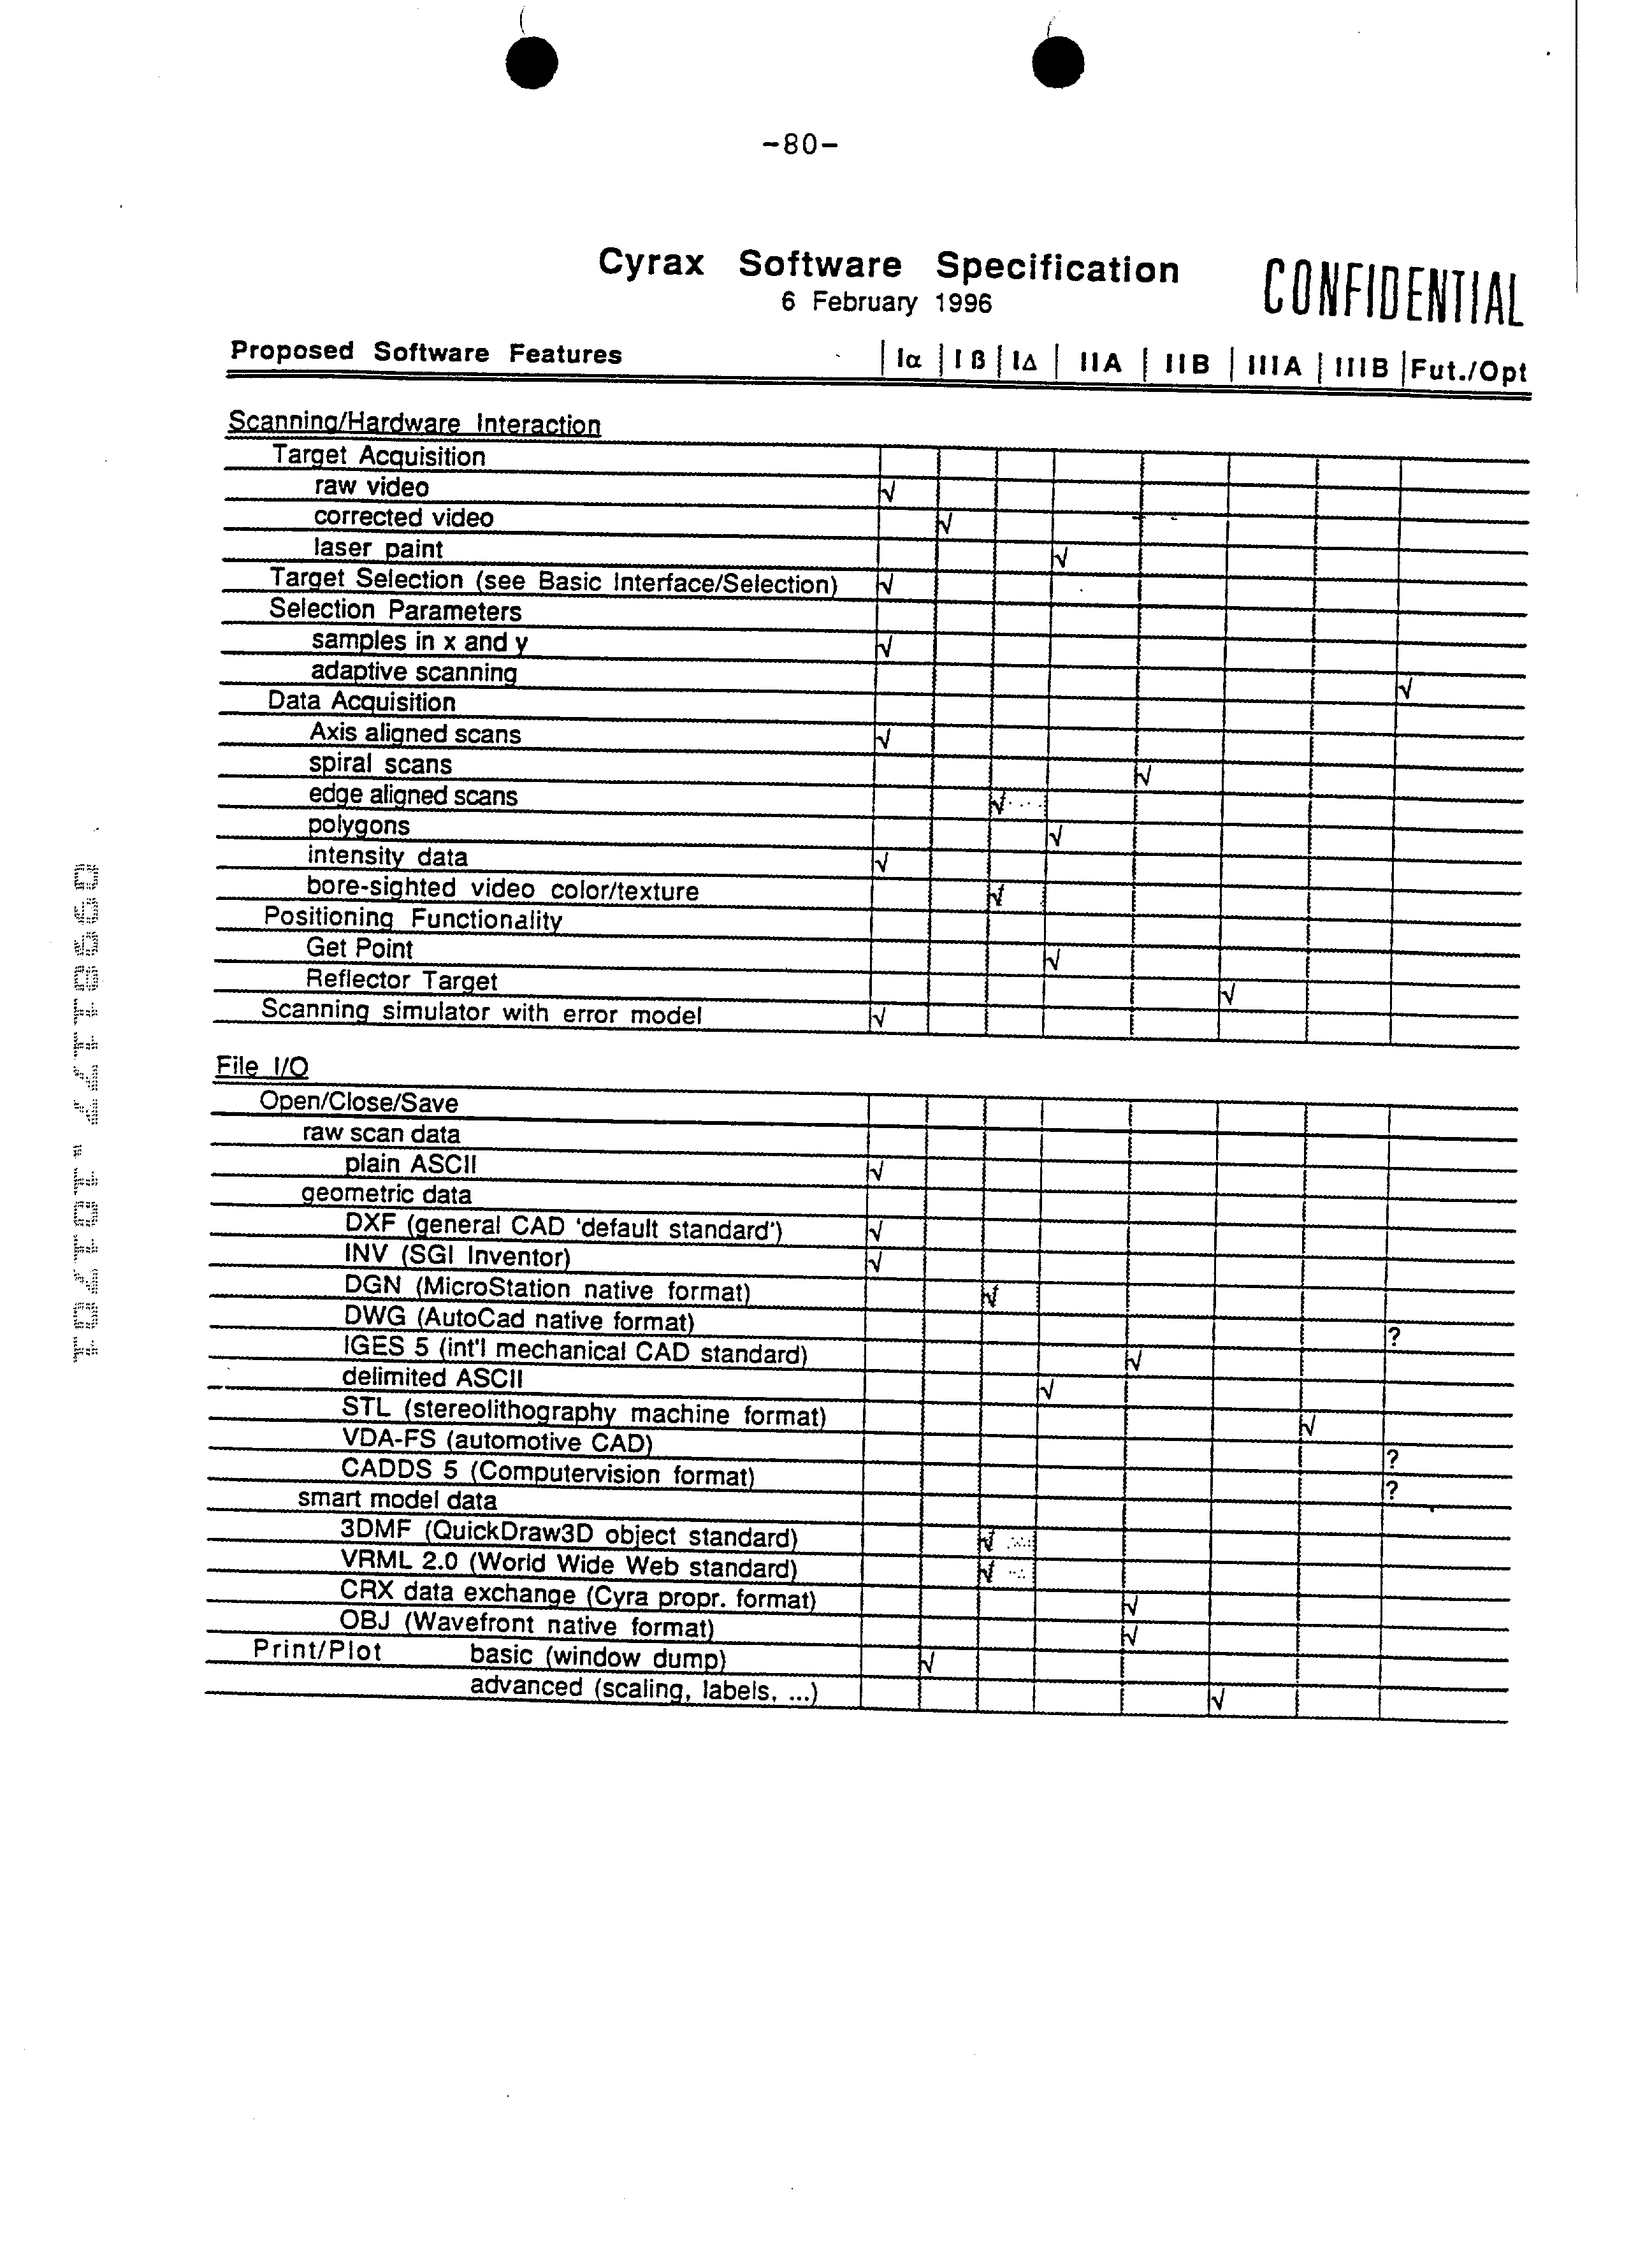 US20020059042A1 - Integrated system for quickly and